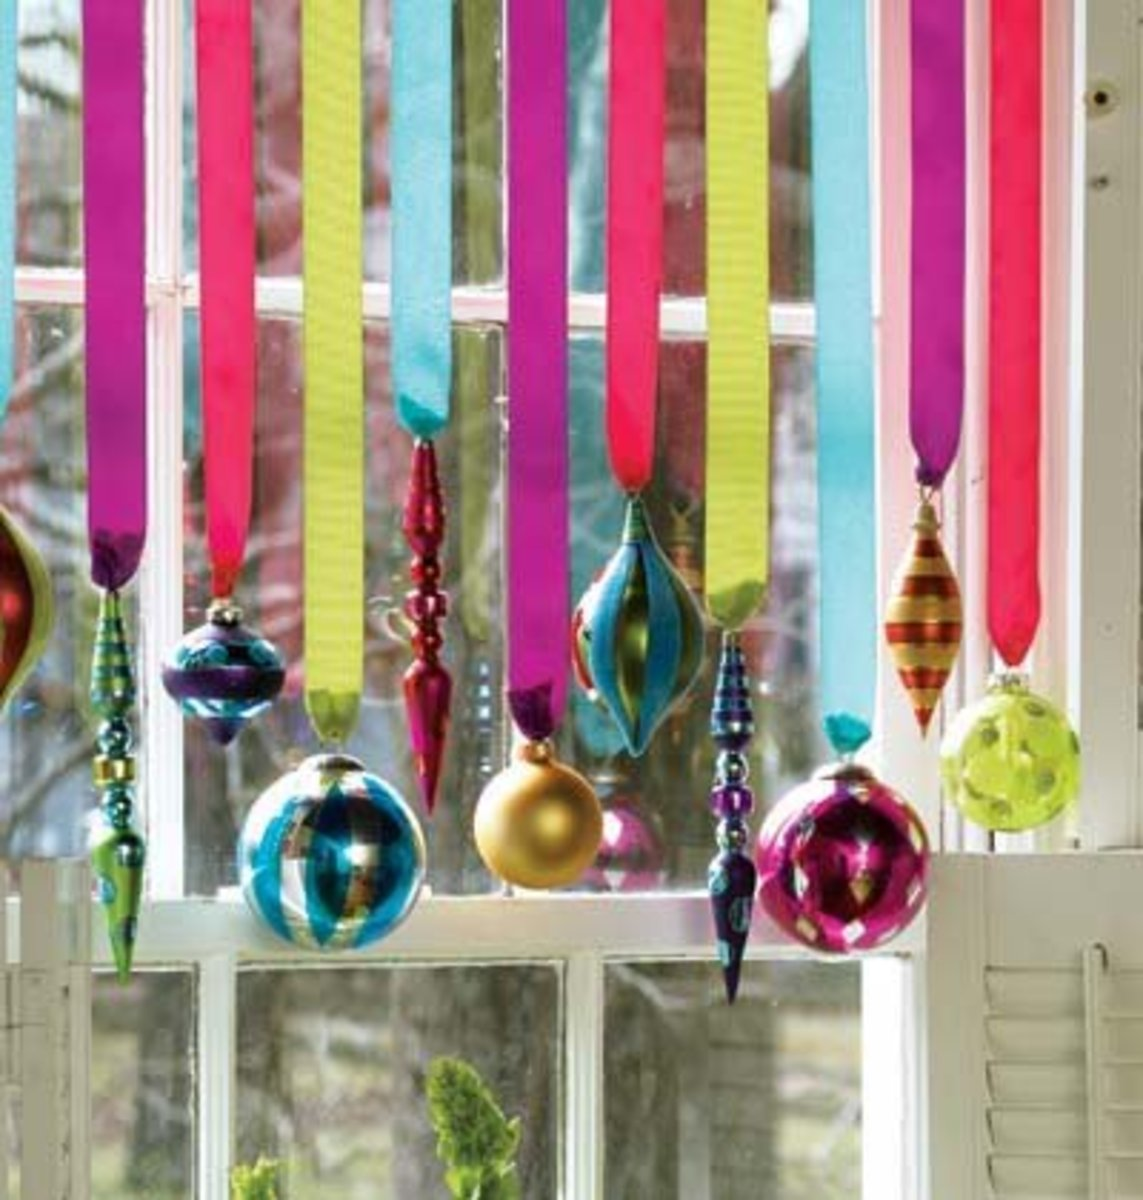 A Curtain of Ornaments